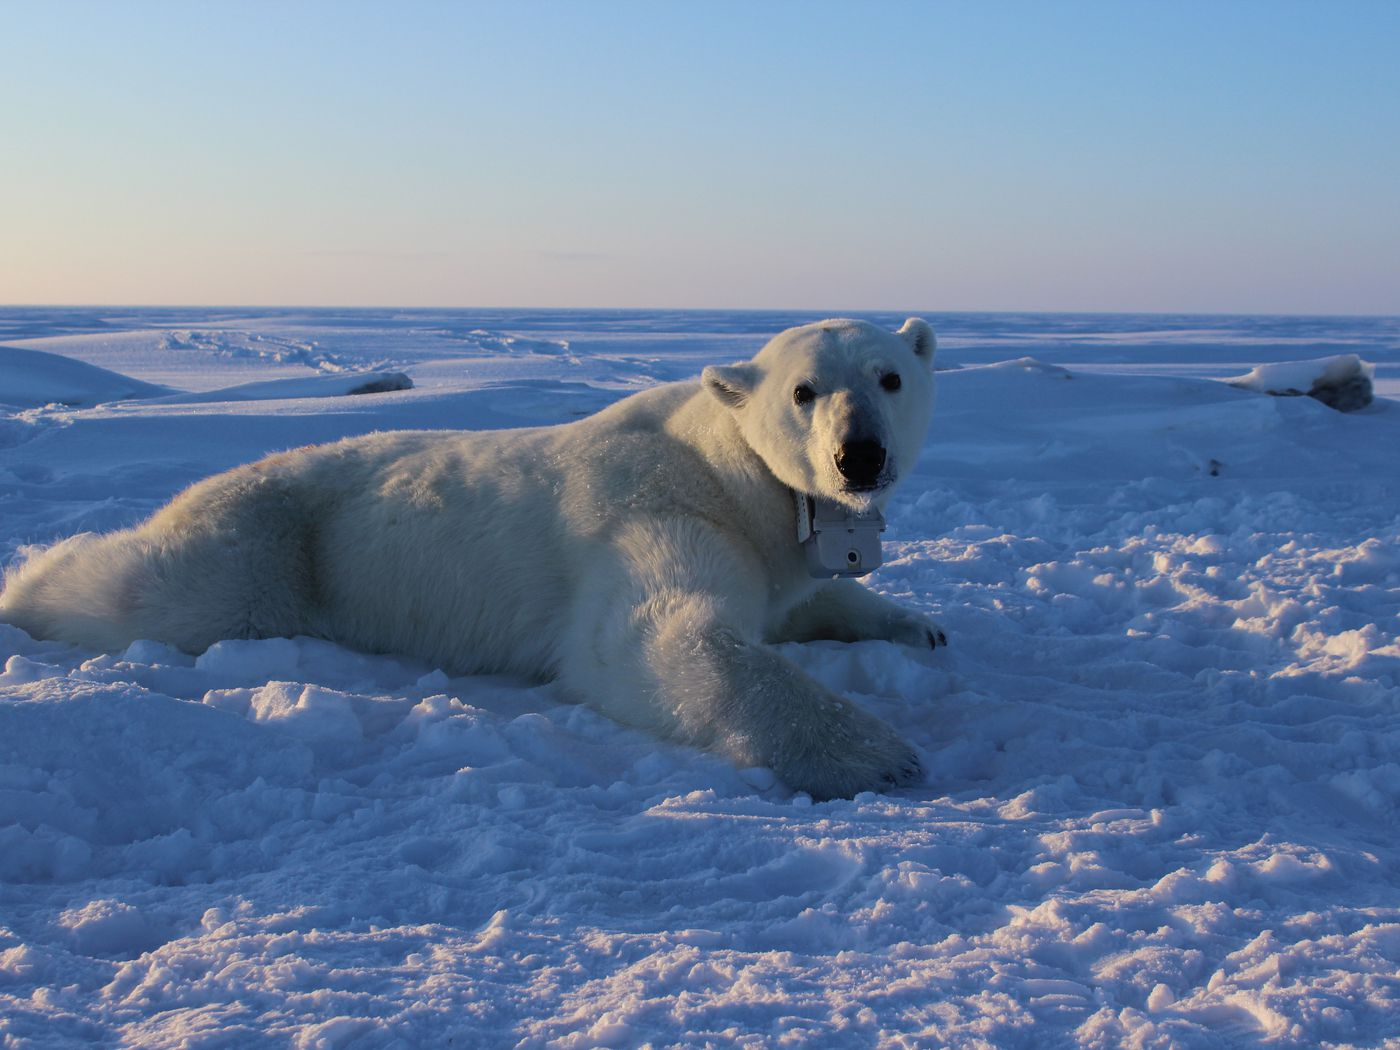 Polar bears need lots of seal snacks — and a melting Arctic